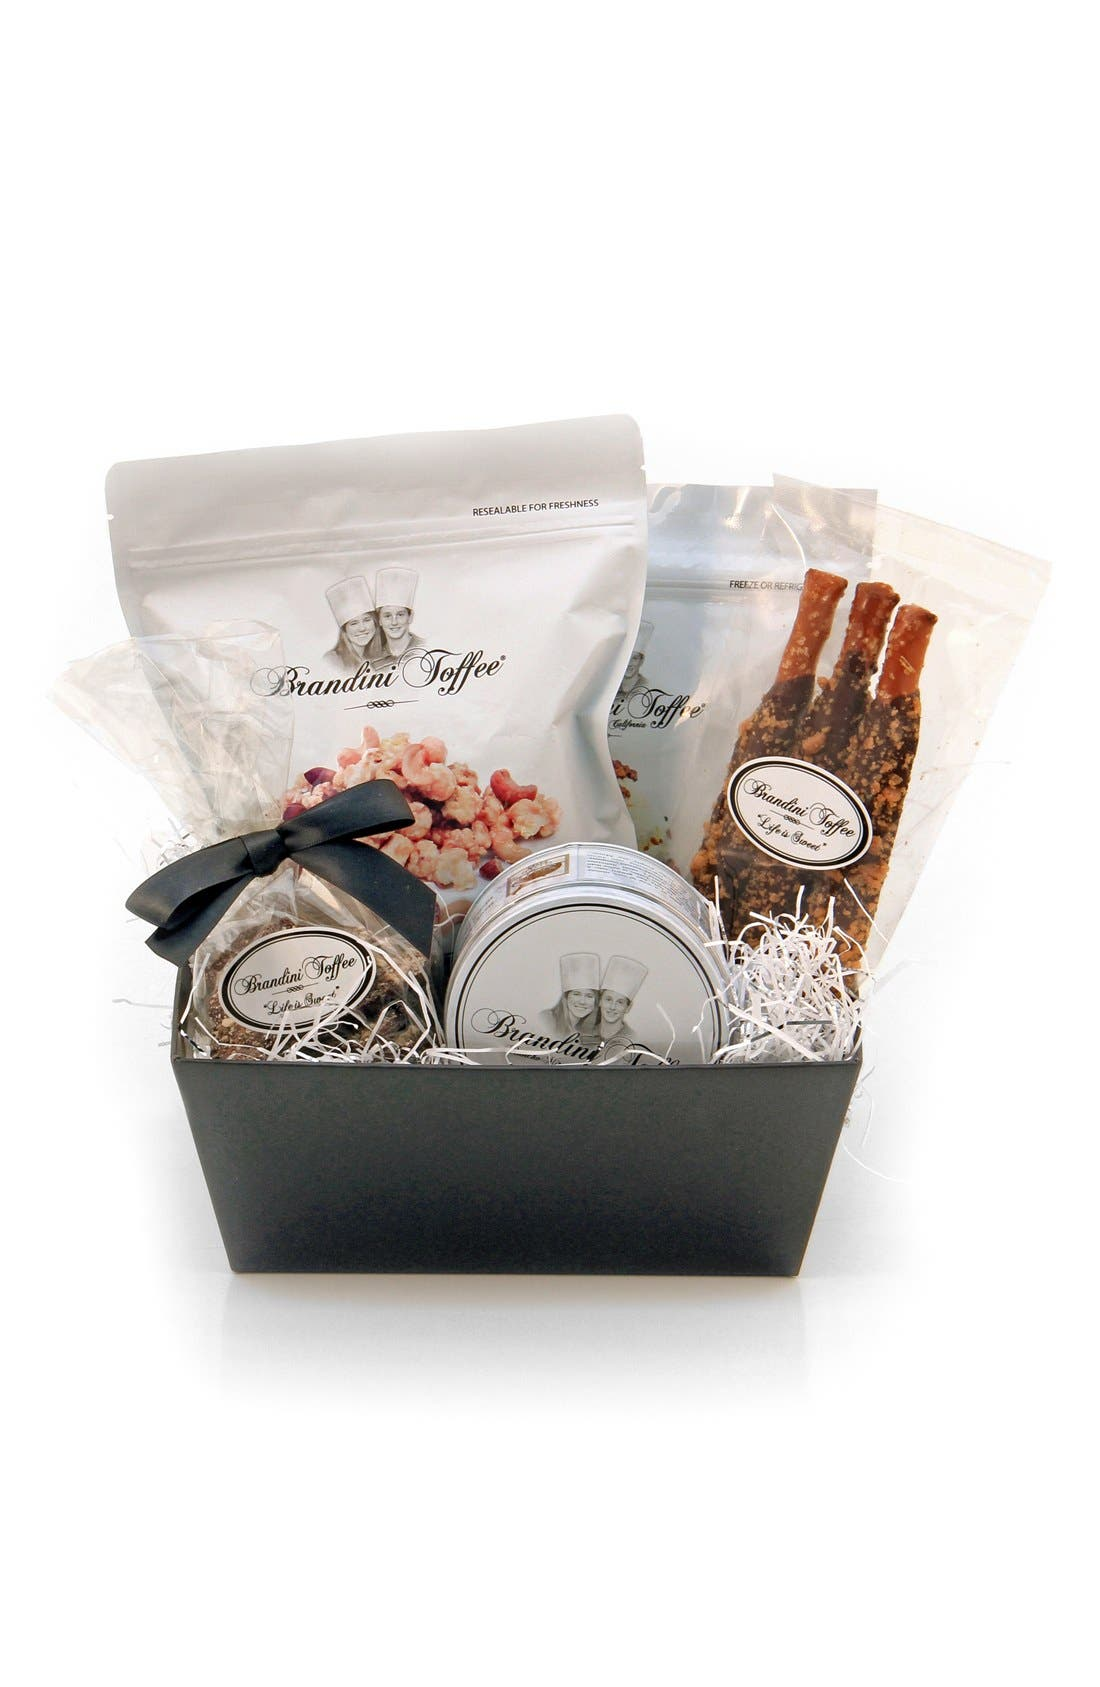 Brandini Toffee Small Gift Basket